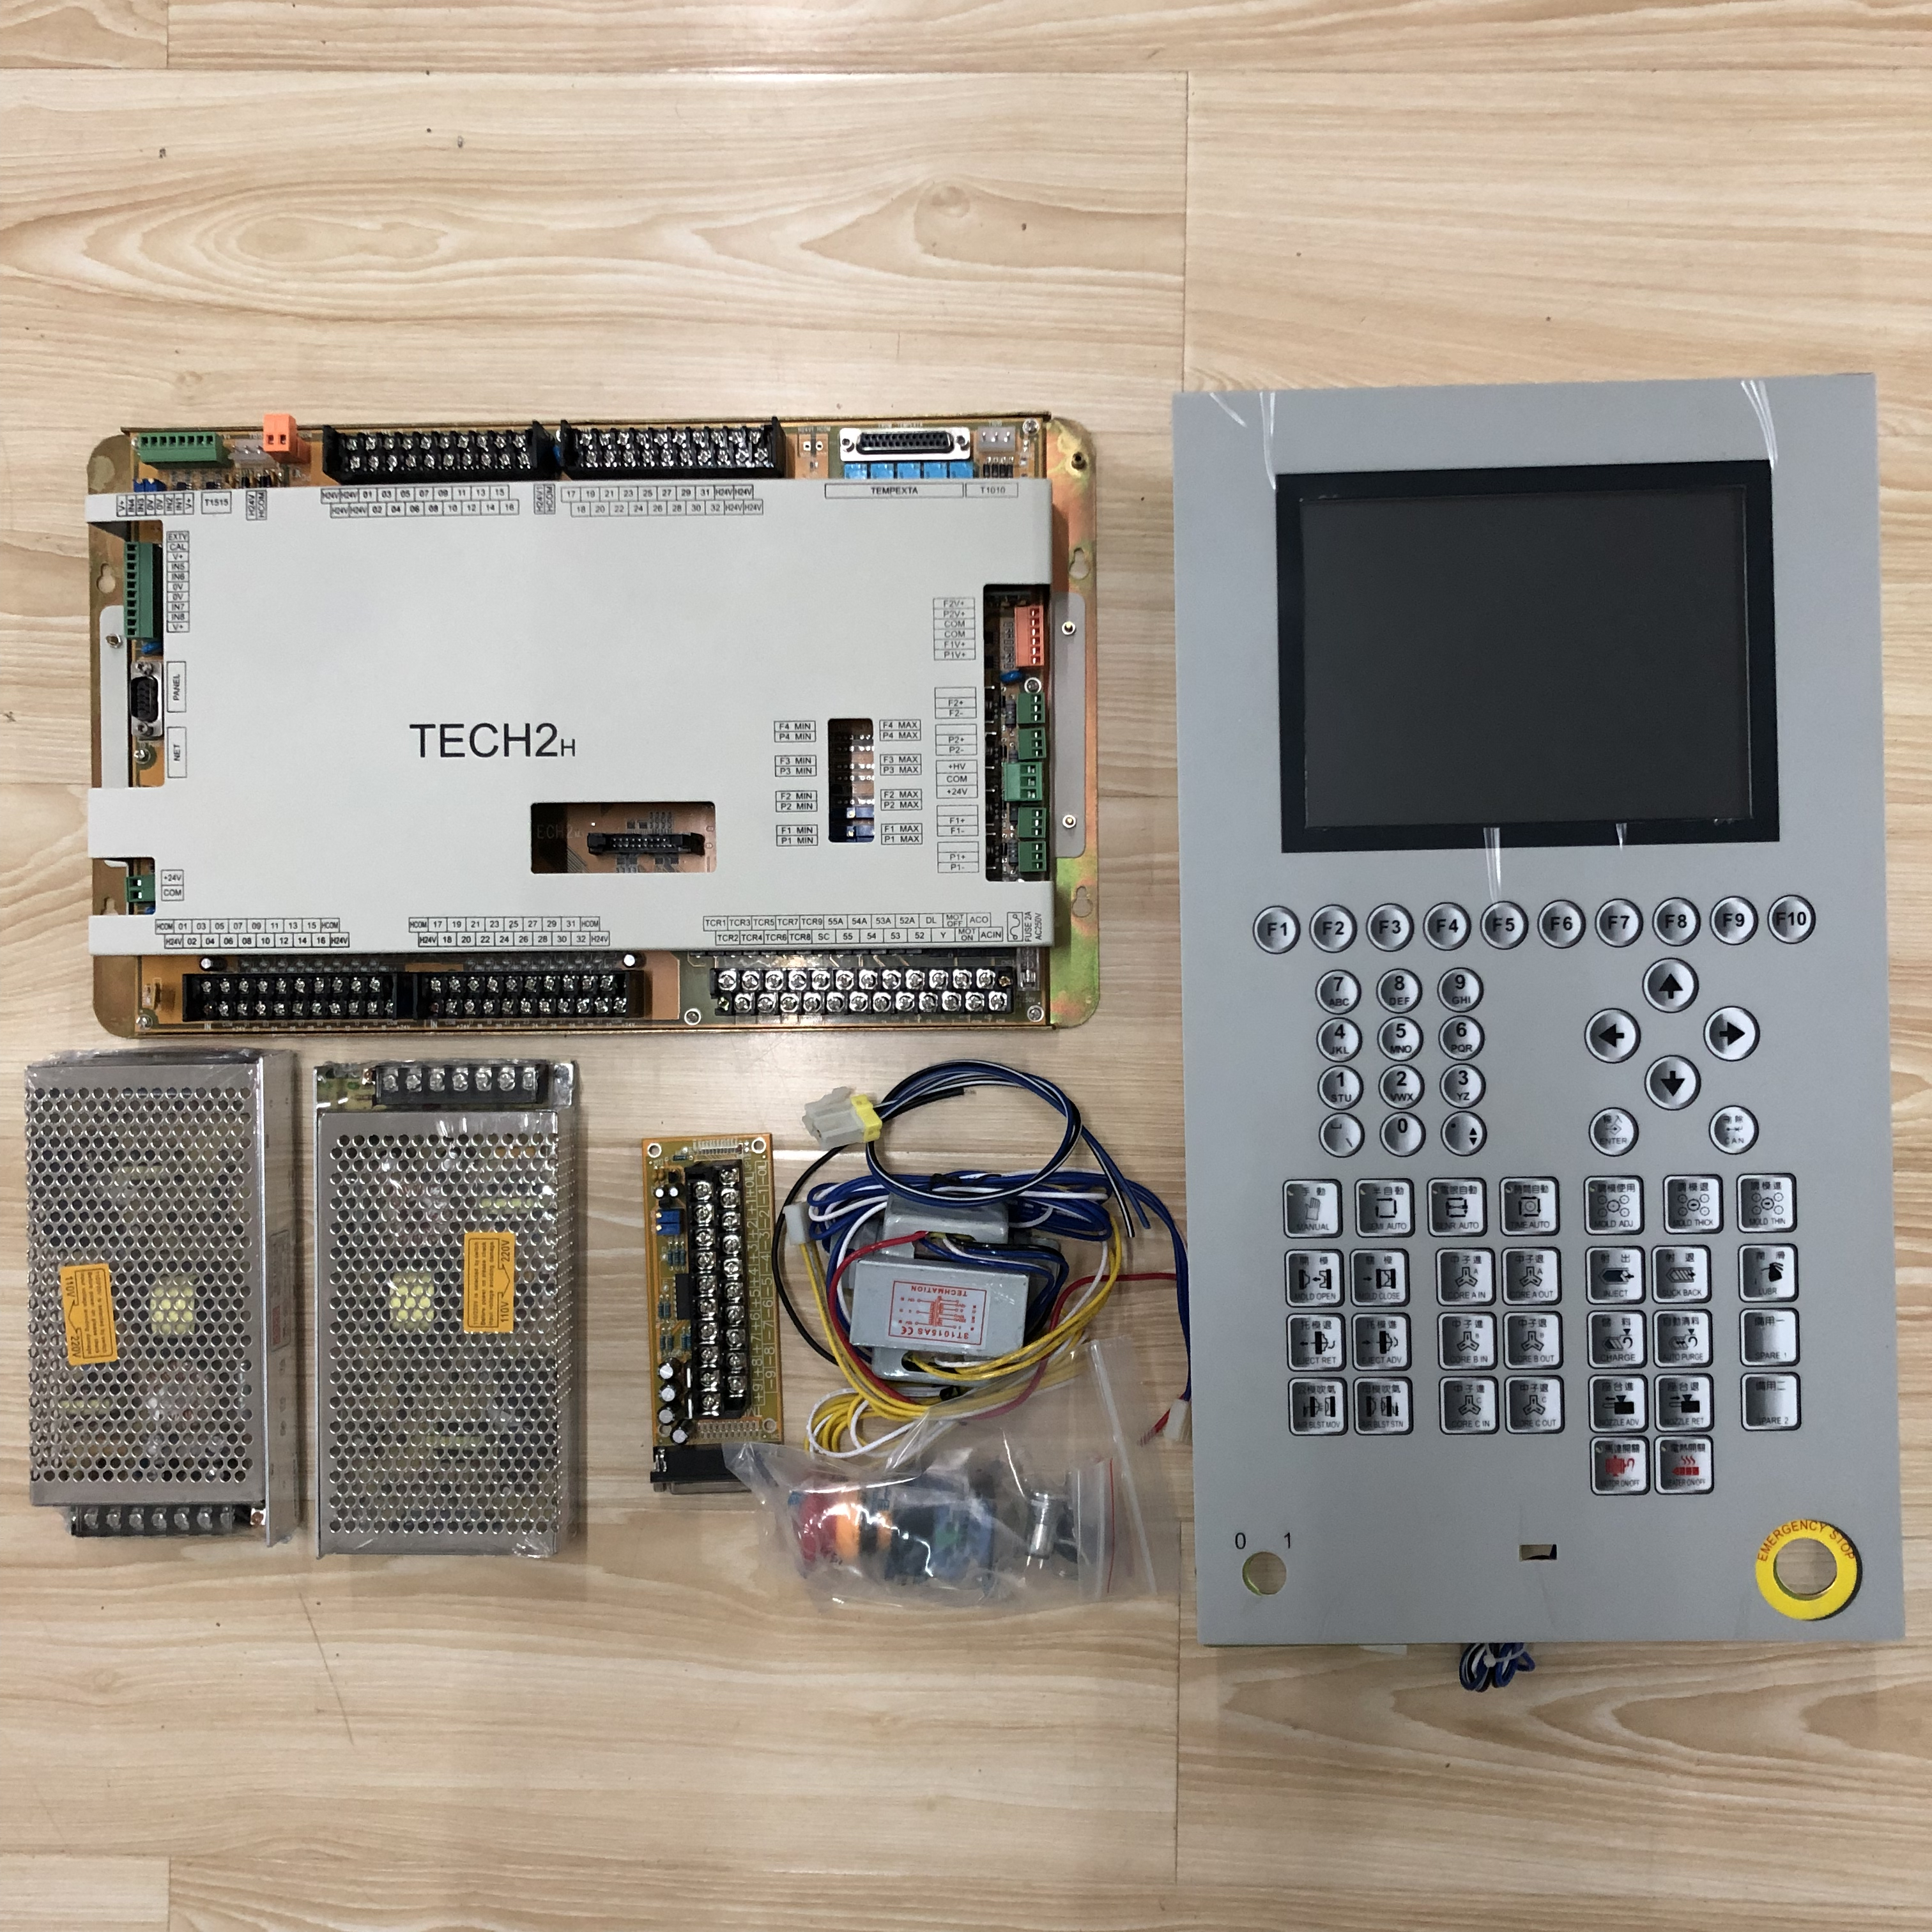 Techmation TECH2  HMI Q8M Complete Set Control System For Injection Molding Machine . Full Set  MADE IN CHINA